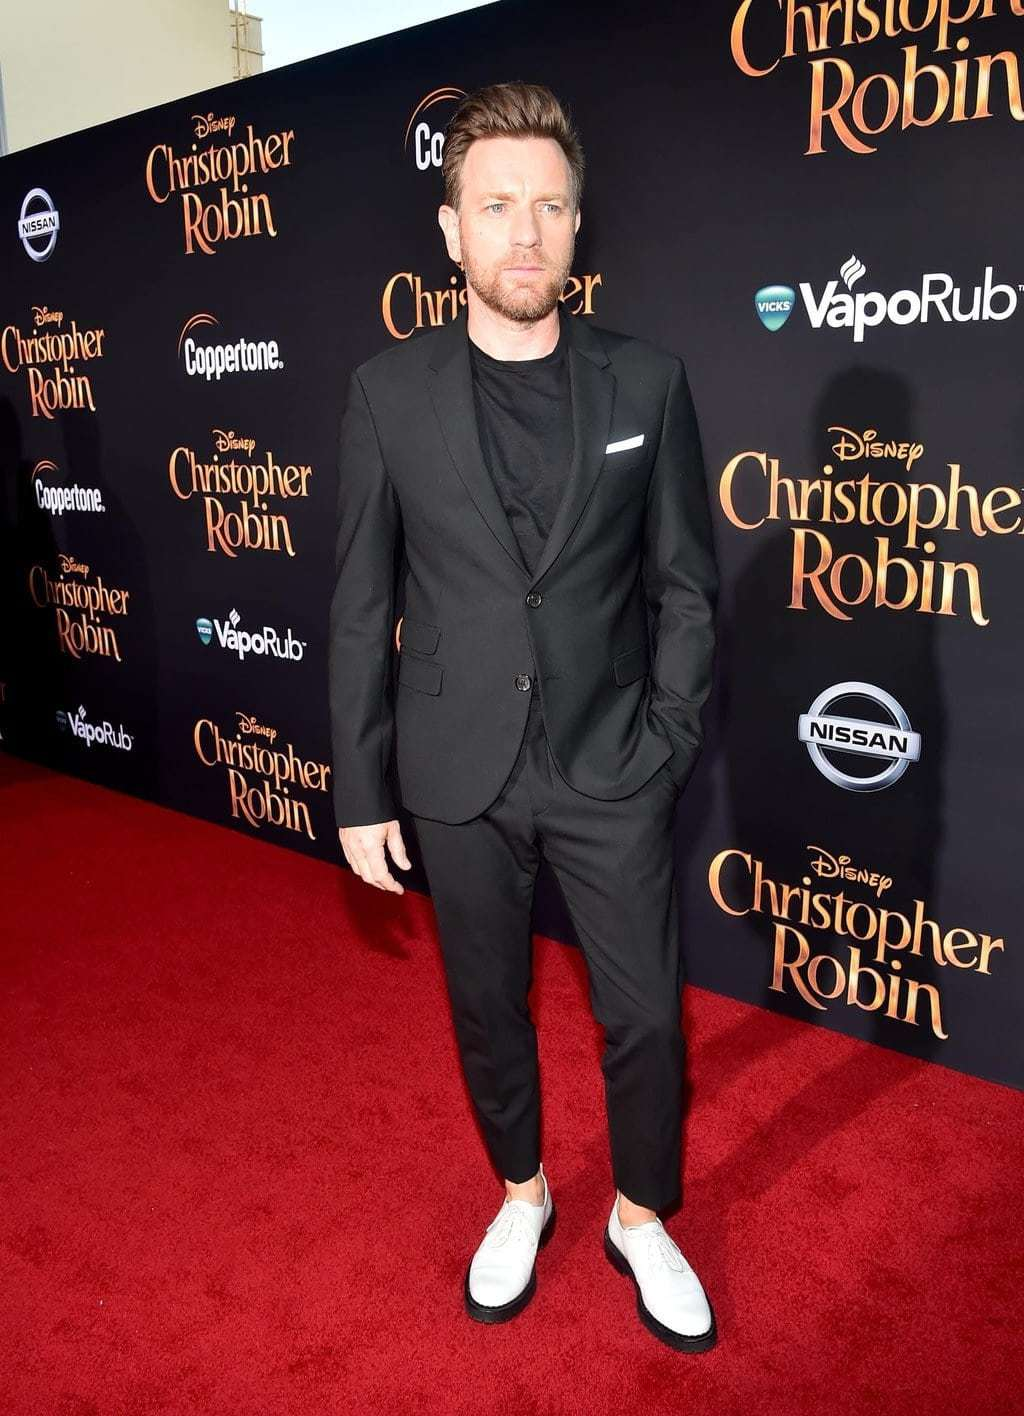 Ewan McGregor at Disney's Red Carpet for Christopher Robin